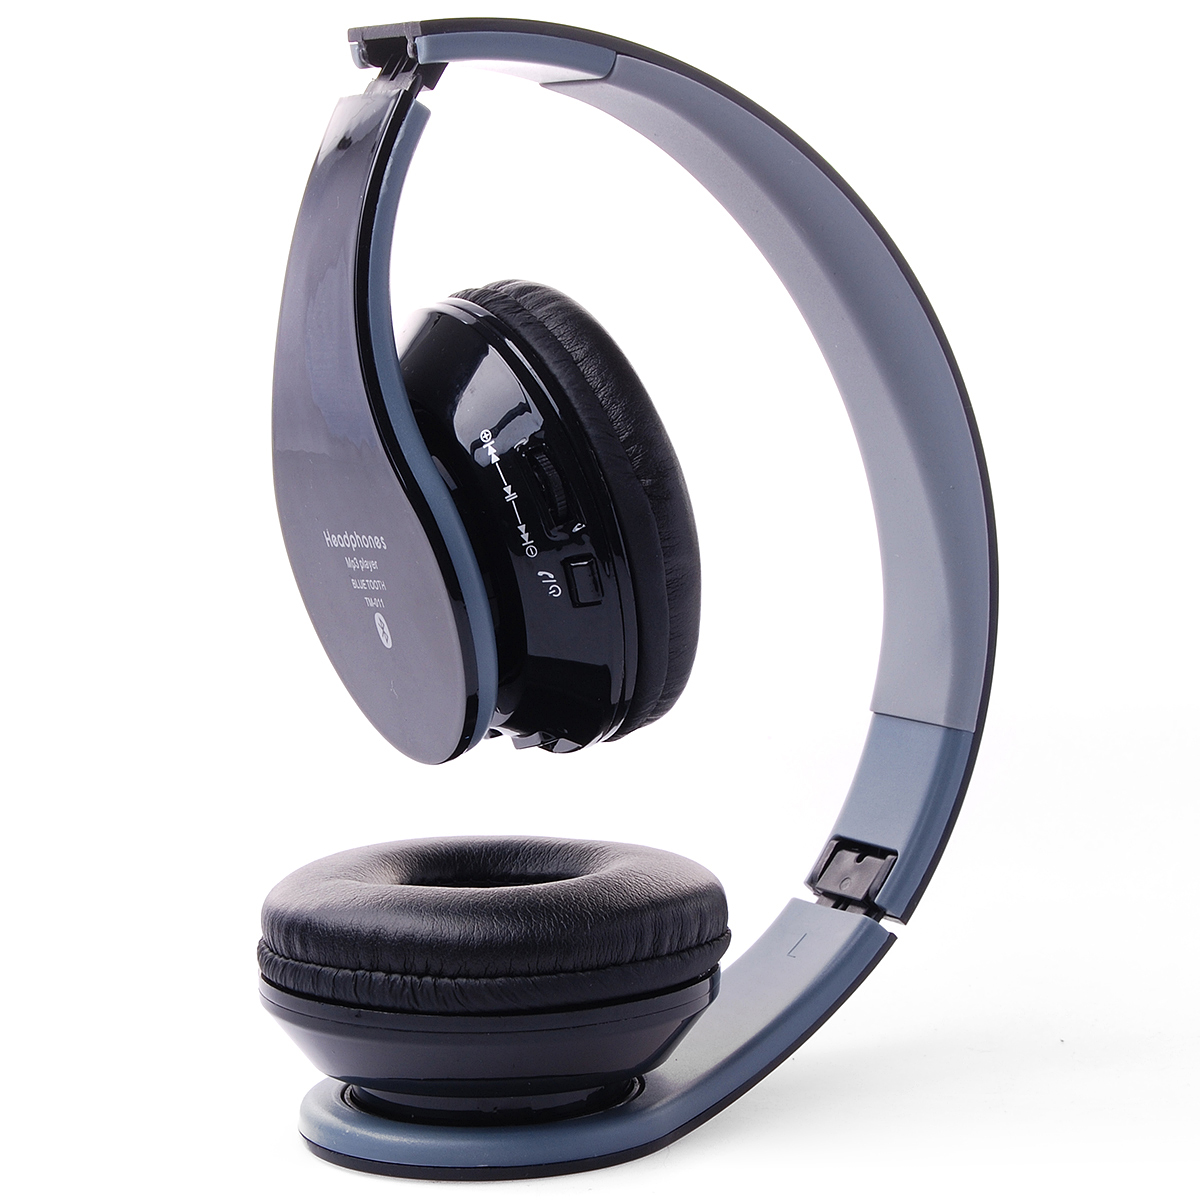 wireless bluetooth headphones headset with noise reduction technology. Black Bedroom Furniture Sets. Home Design Ideas